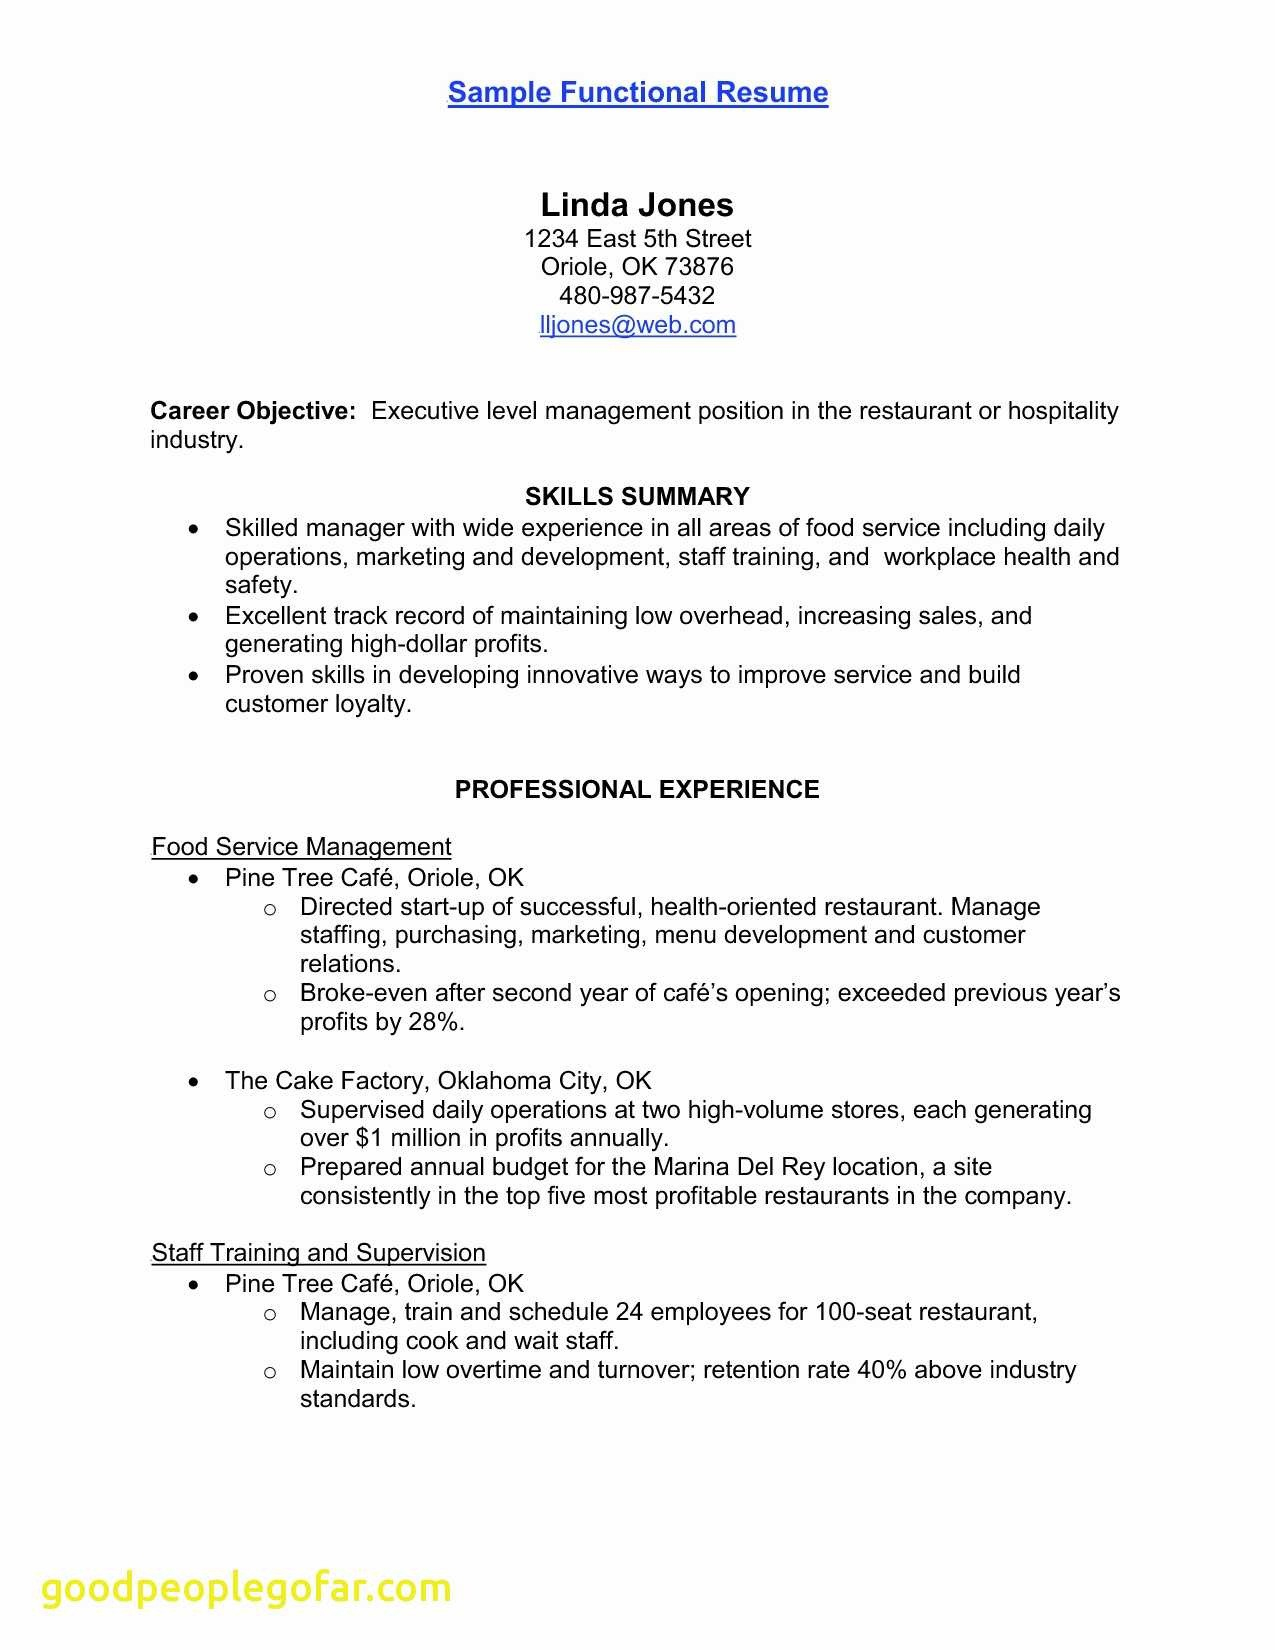 Mechanic Resume Sample - Maintenance Technician Resume Awesome Mechanic Skills for Resume